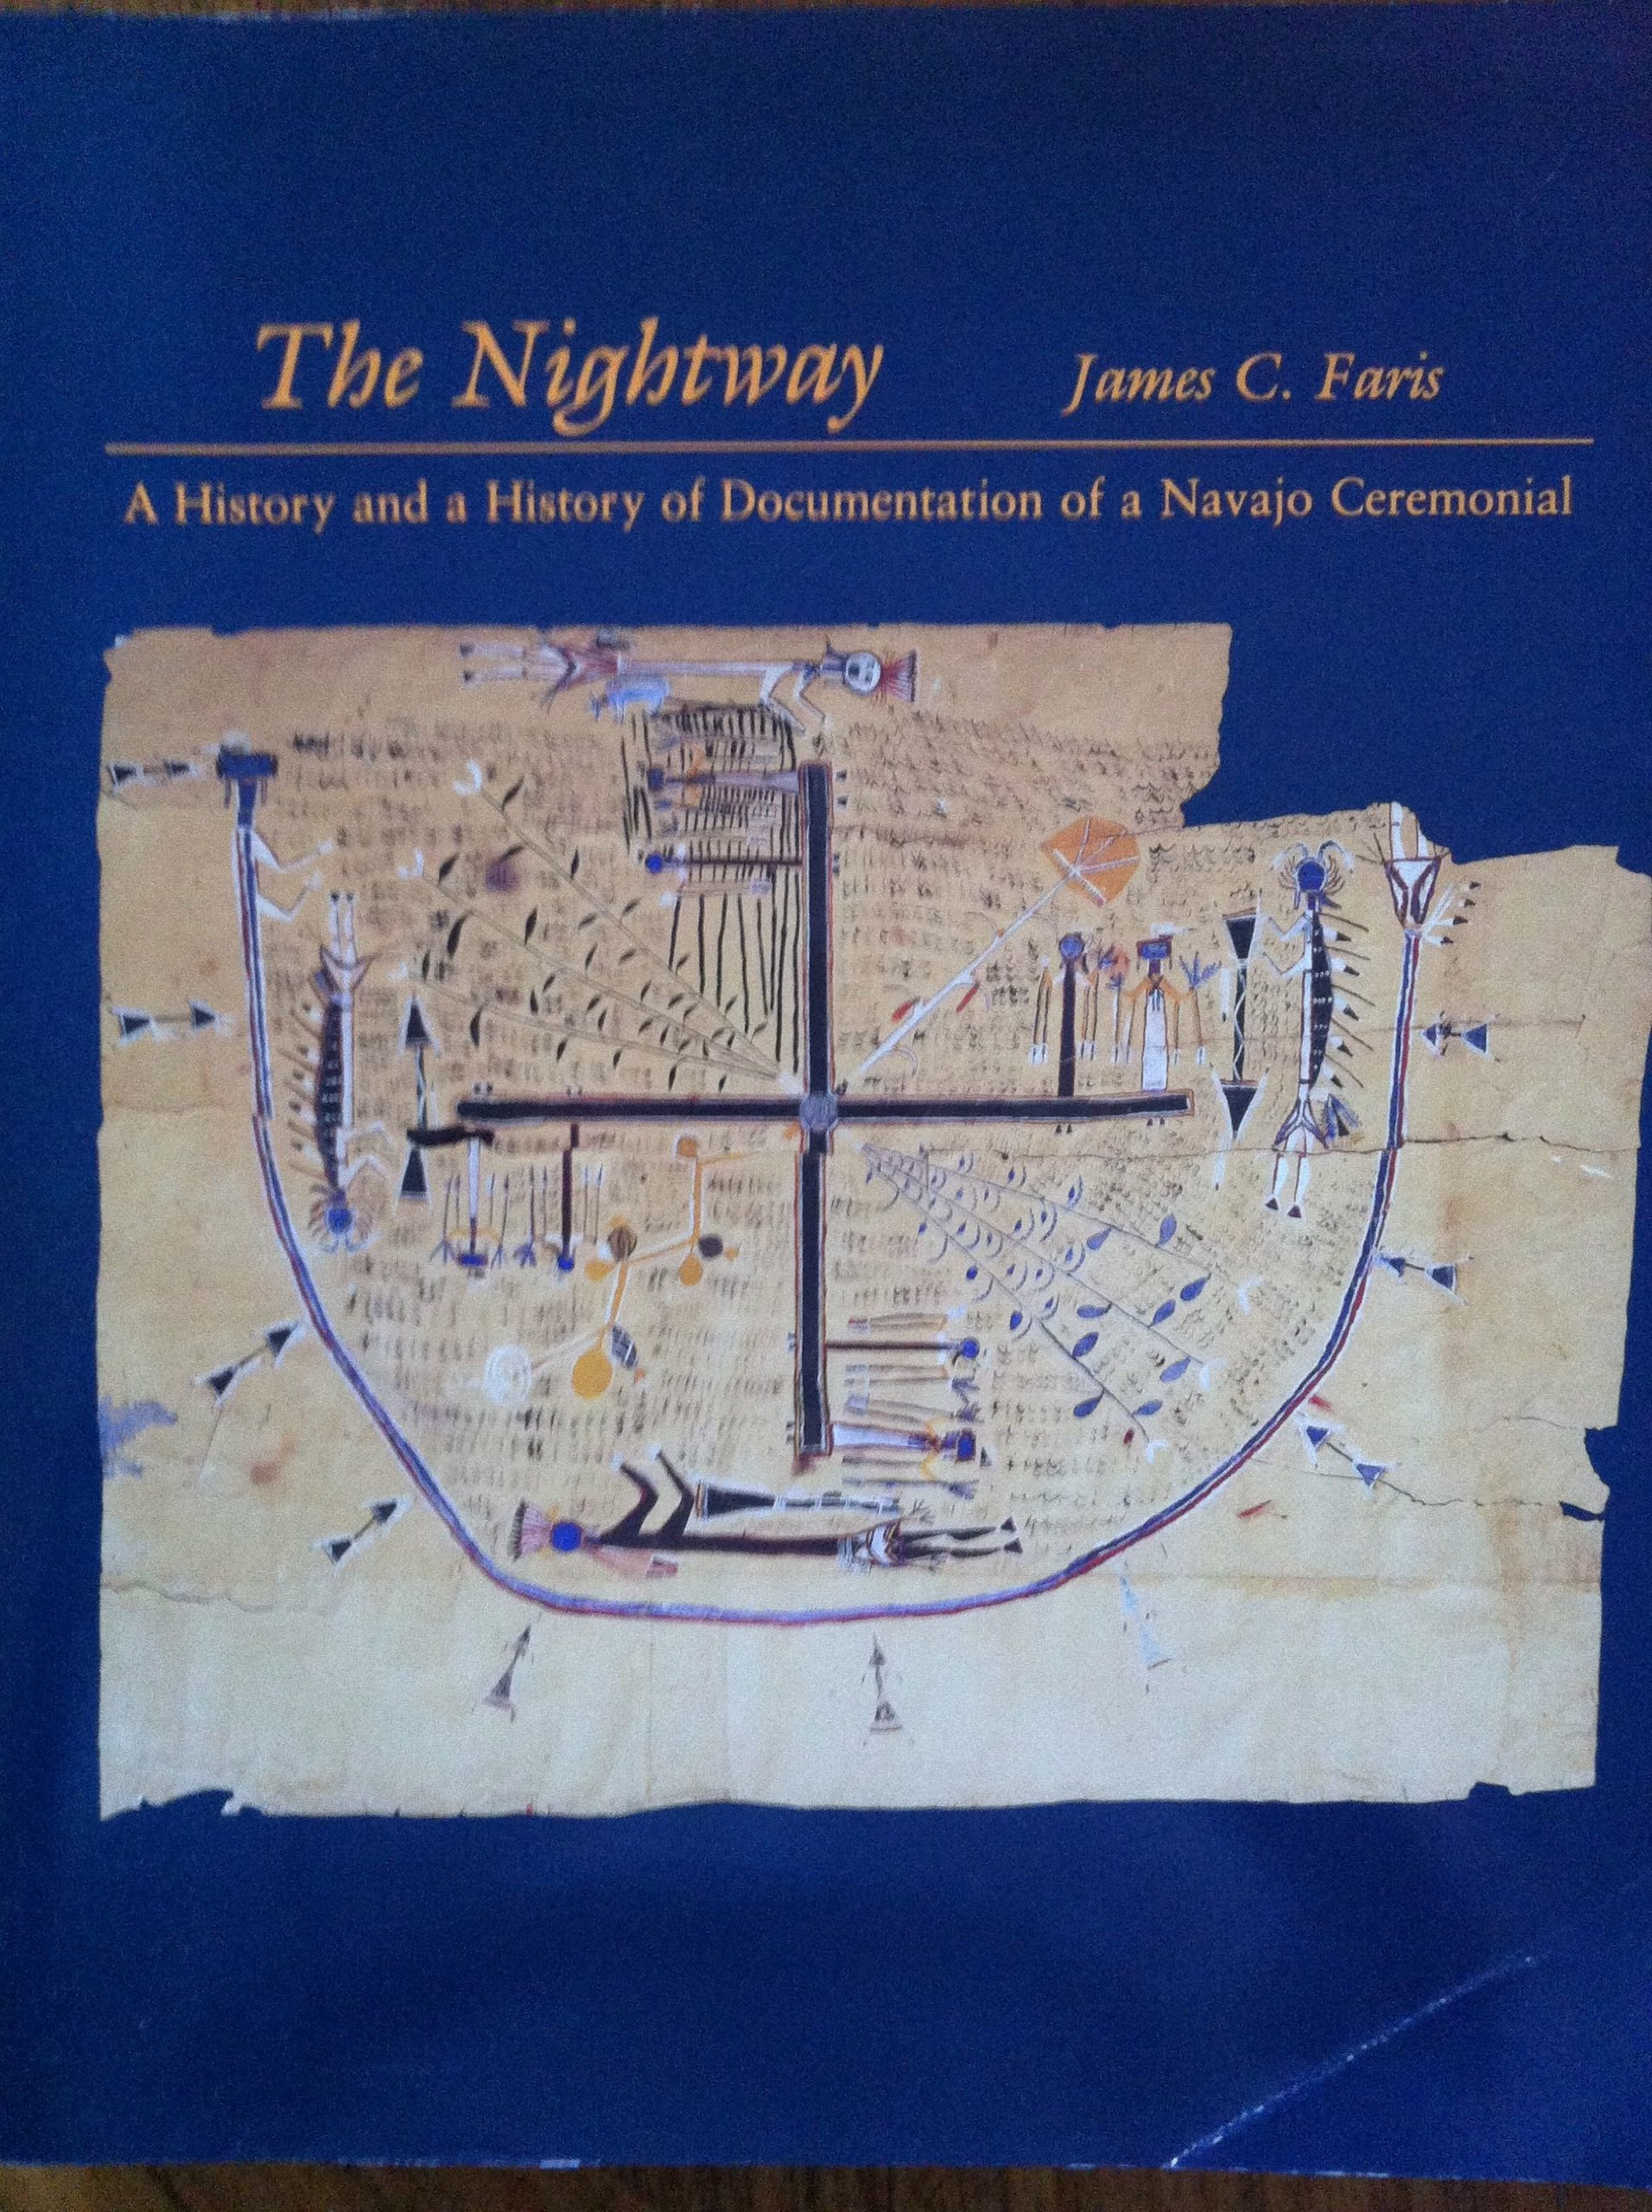 The Nightway: A History and a History of Documentation of a